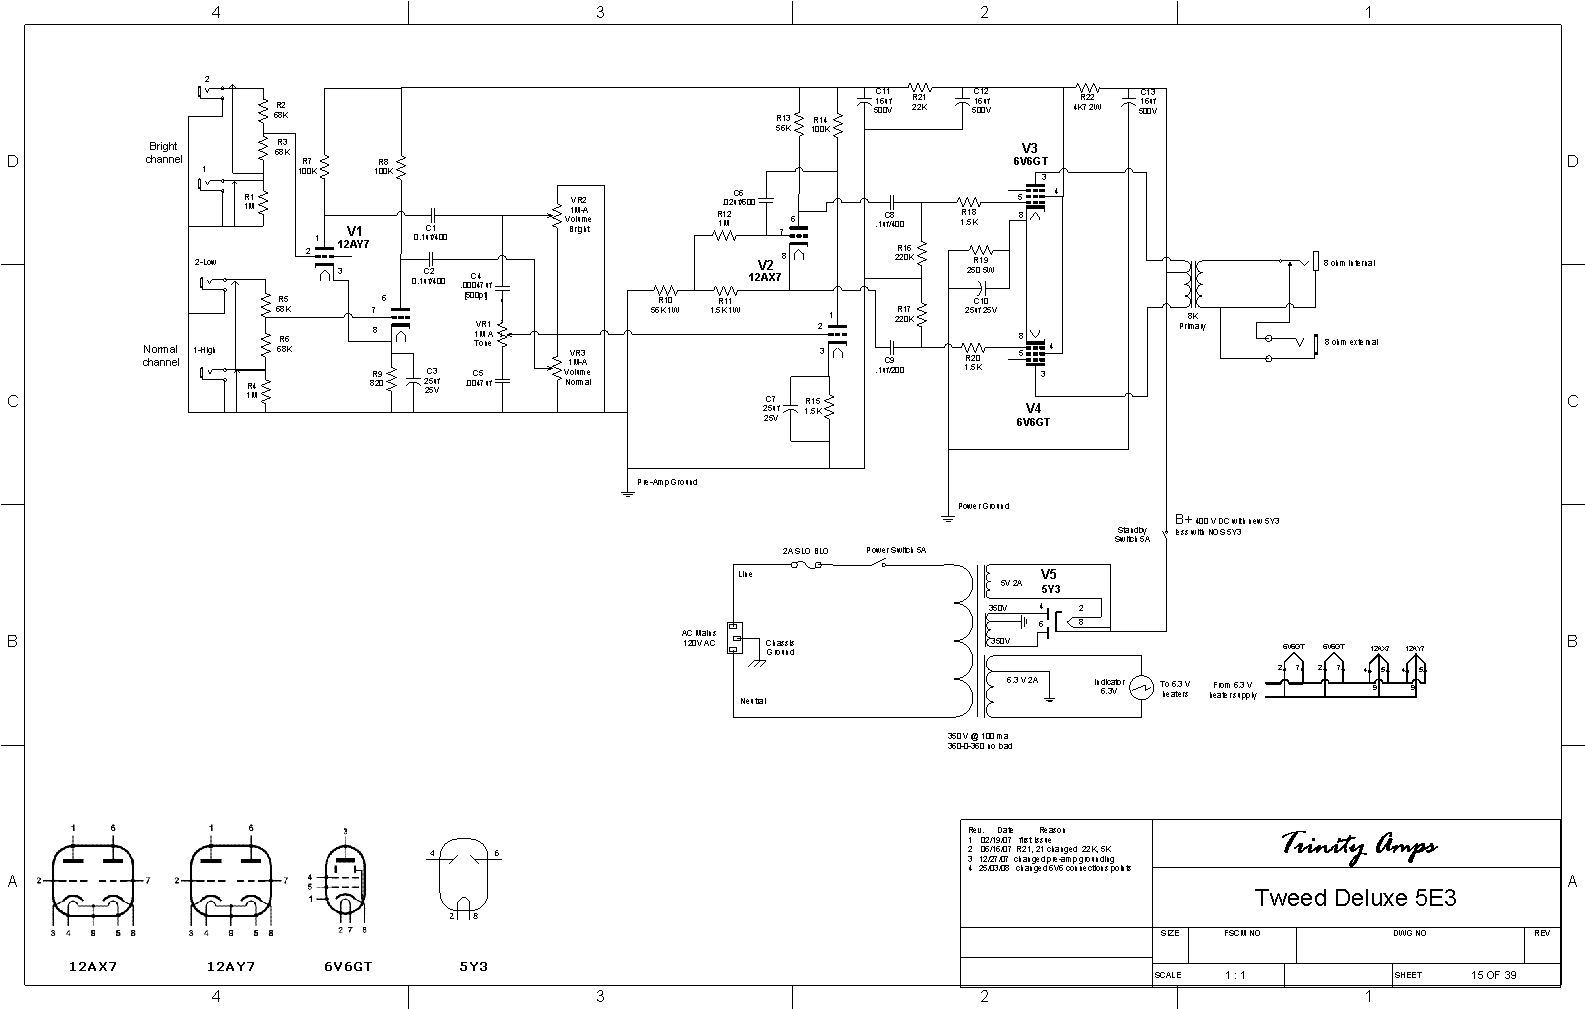 Scion Xb Fuel Filter in addition 25 Watt Tube   Schematic moreover 91 240sx Wiring Harness Diagram also Car Wire Harness Connectors Solder together with Aftermarket Radio Factory   Wiring Help 75961. on aftermarket radio factory wiring help 75961